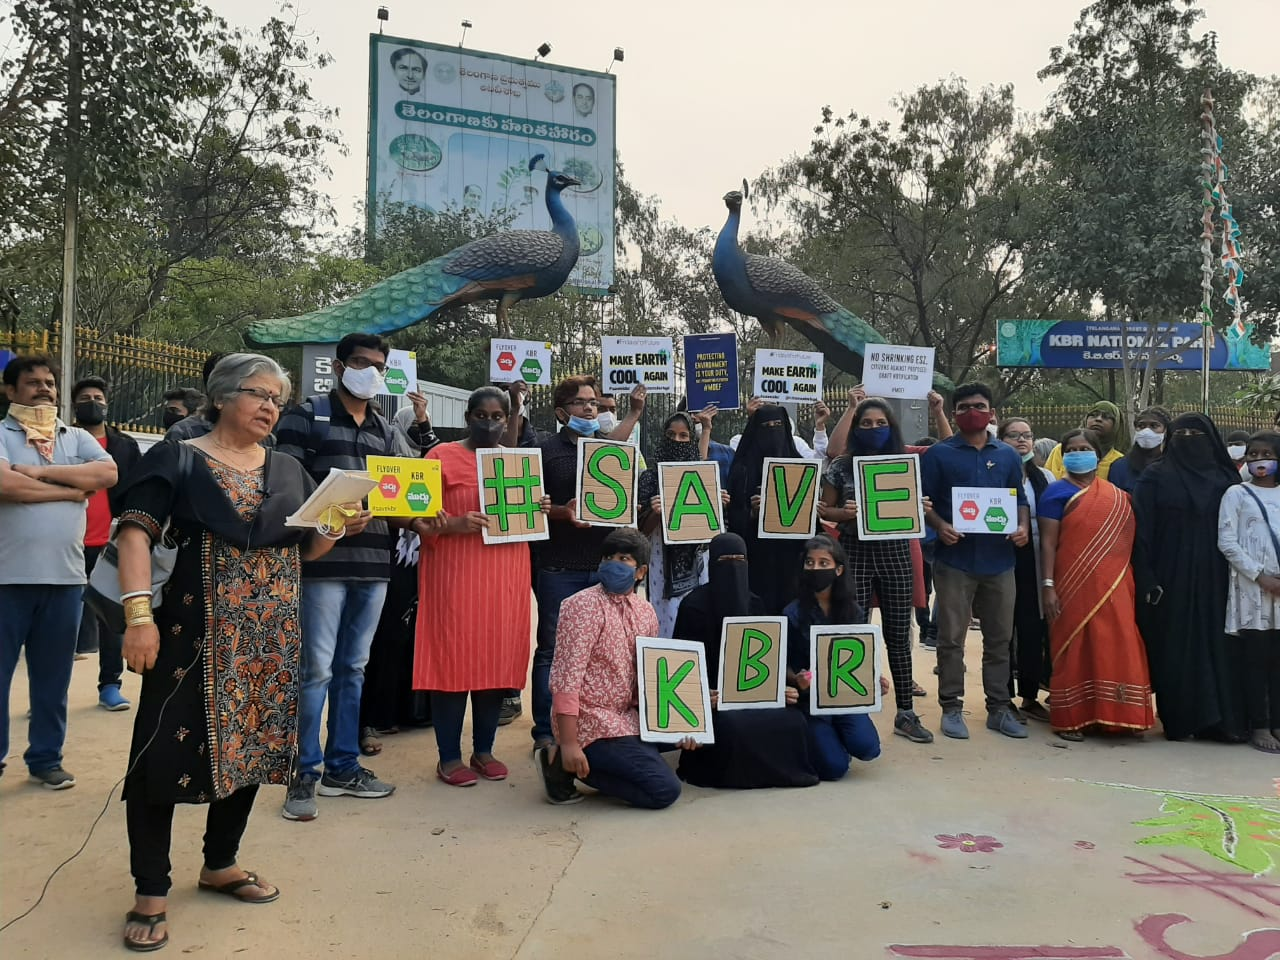 Save KBR activists stood outside the park with signs saying save KBR